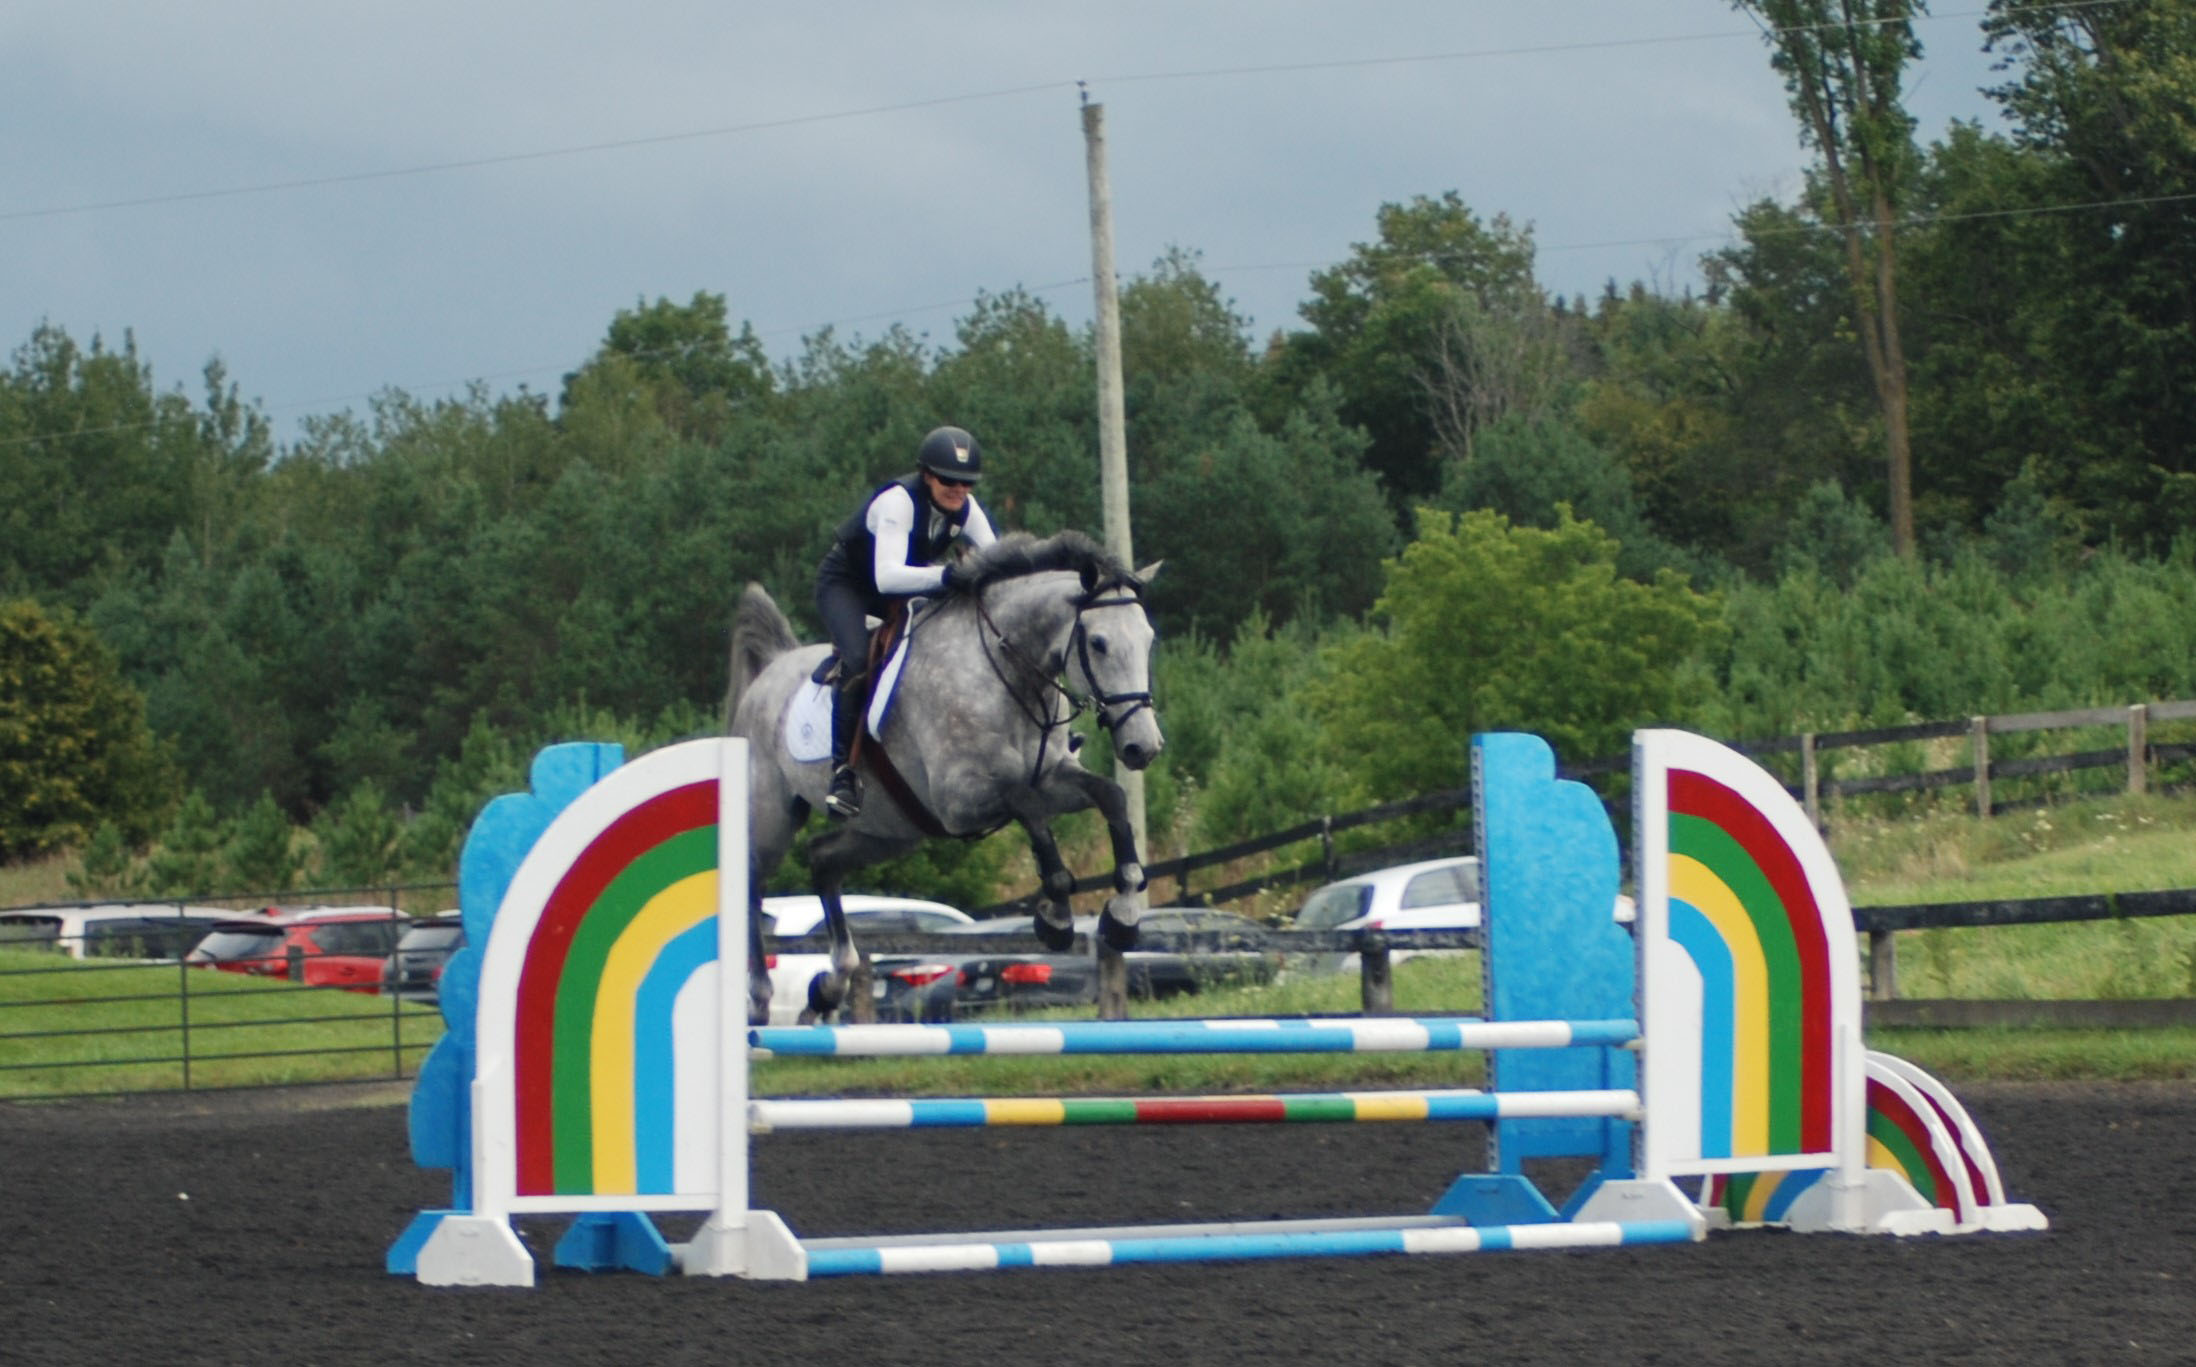 Sarah Bellamy Cleared An Oxer On Day 2 Of The McLain Ward Clinic In Ontario Photo By Suzanna OConnor